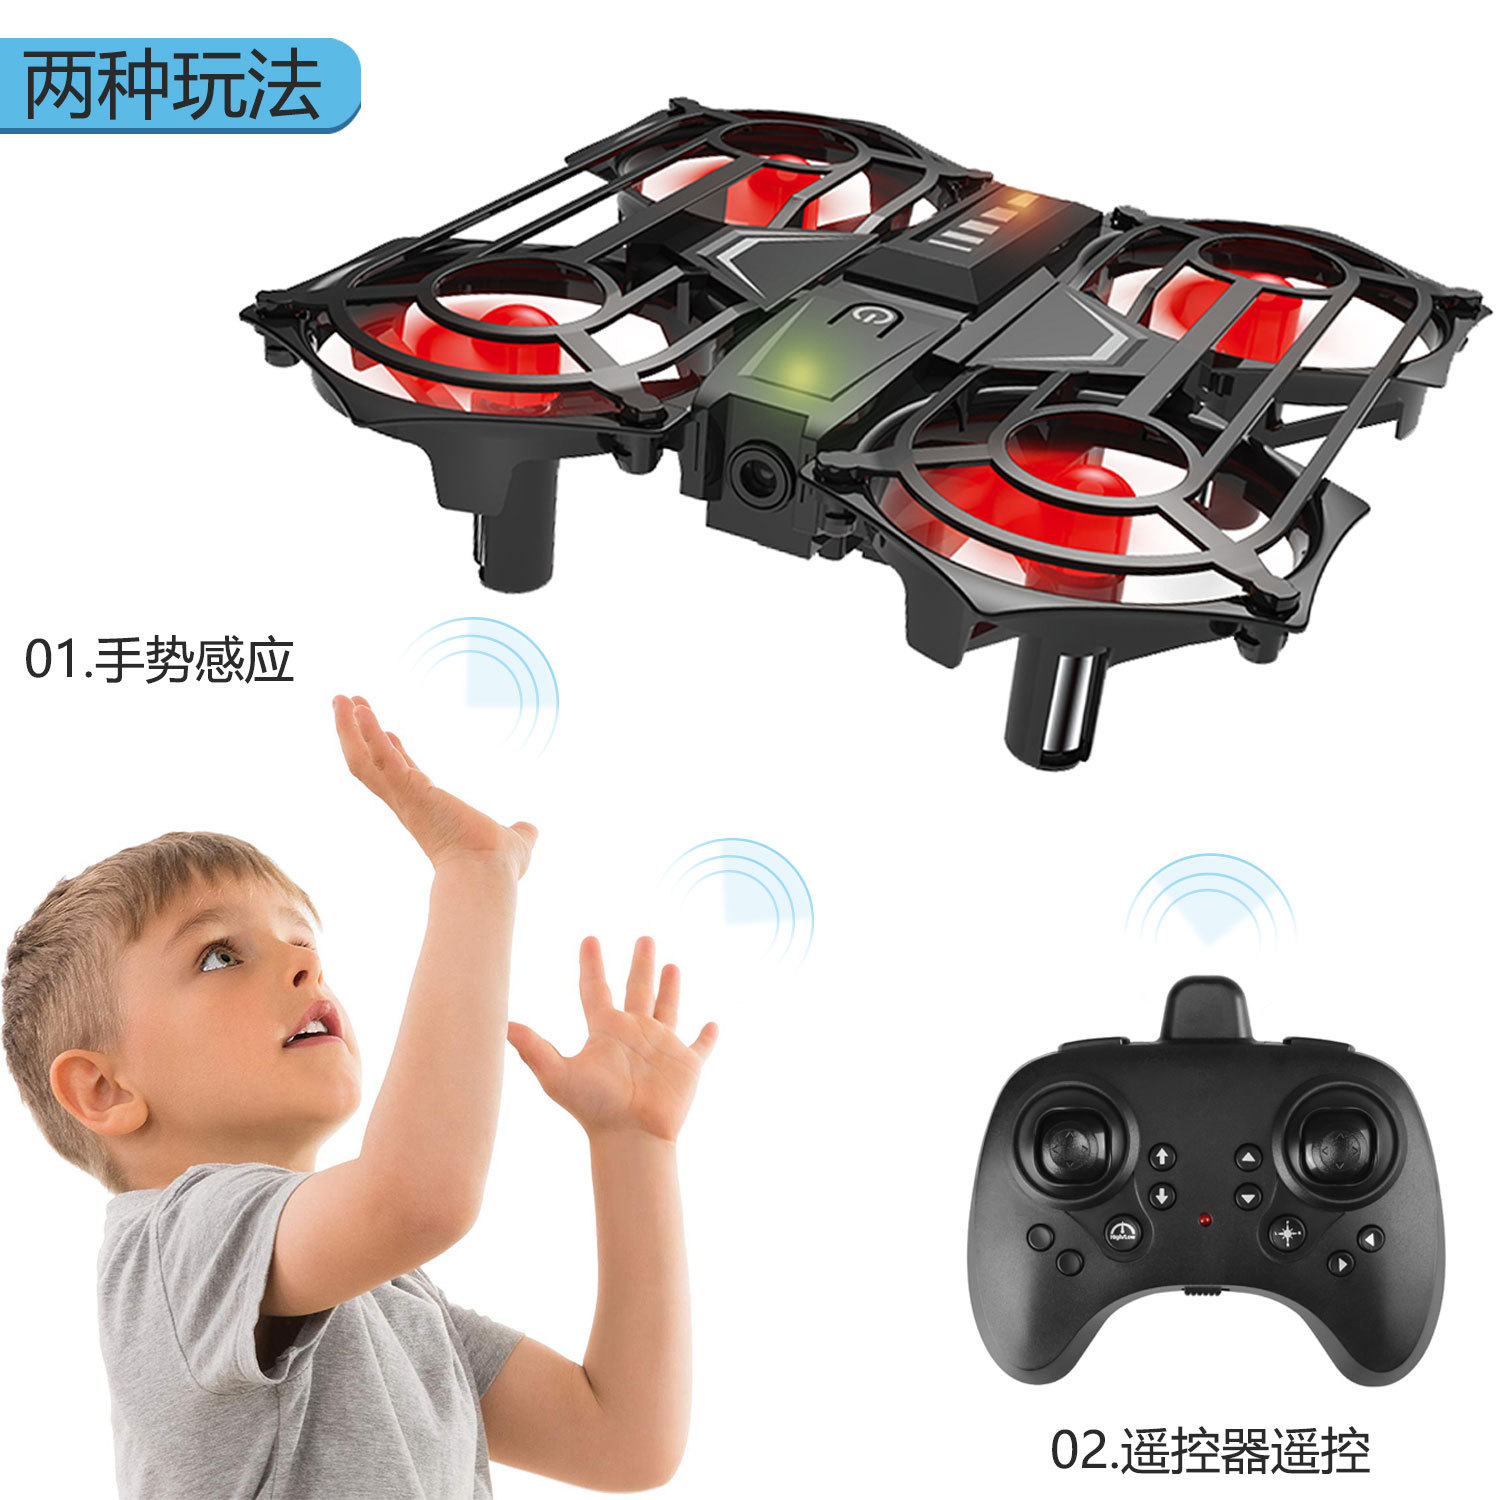 C51 Hot Selling Sensing Mini Unmanned Aerial Vehicle Gesture Sensing Rolling Rotating Aircraft Telecontrolled Toy Aircraft Model